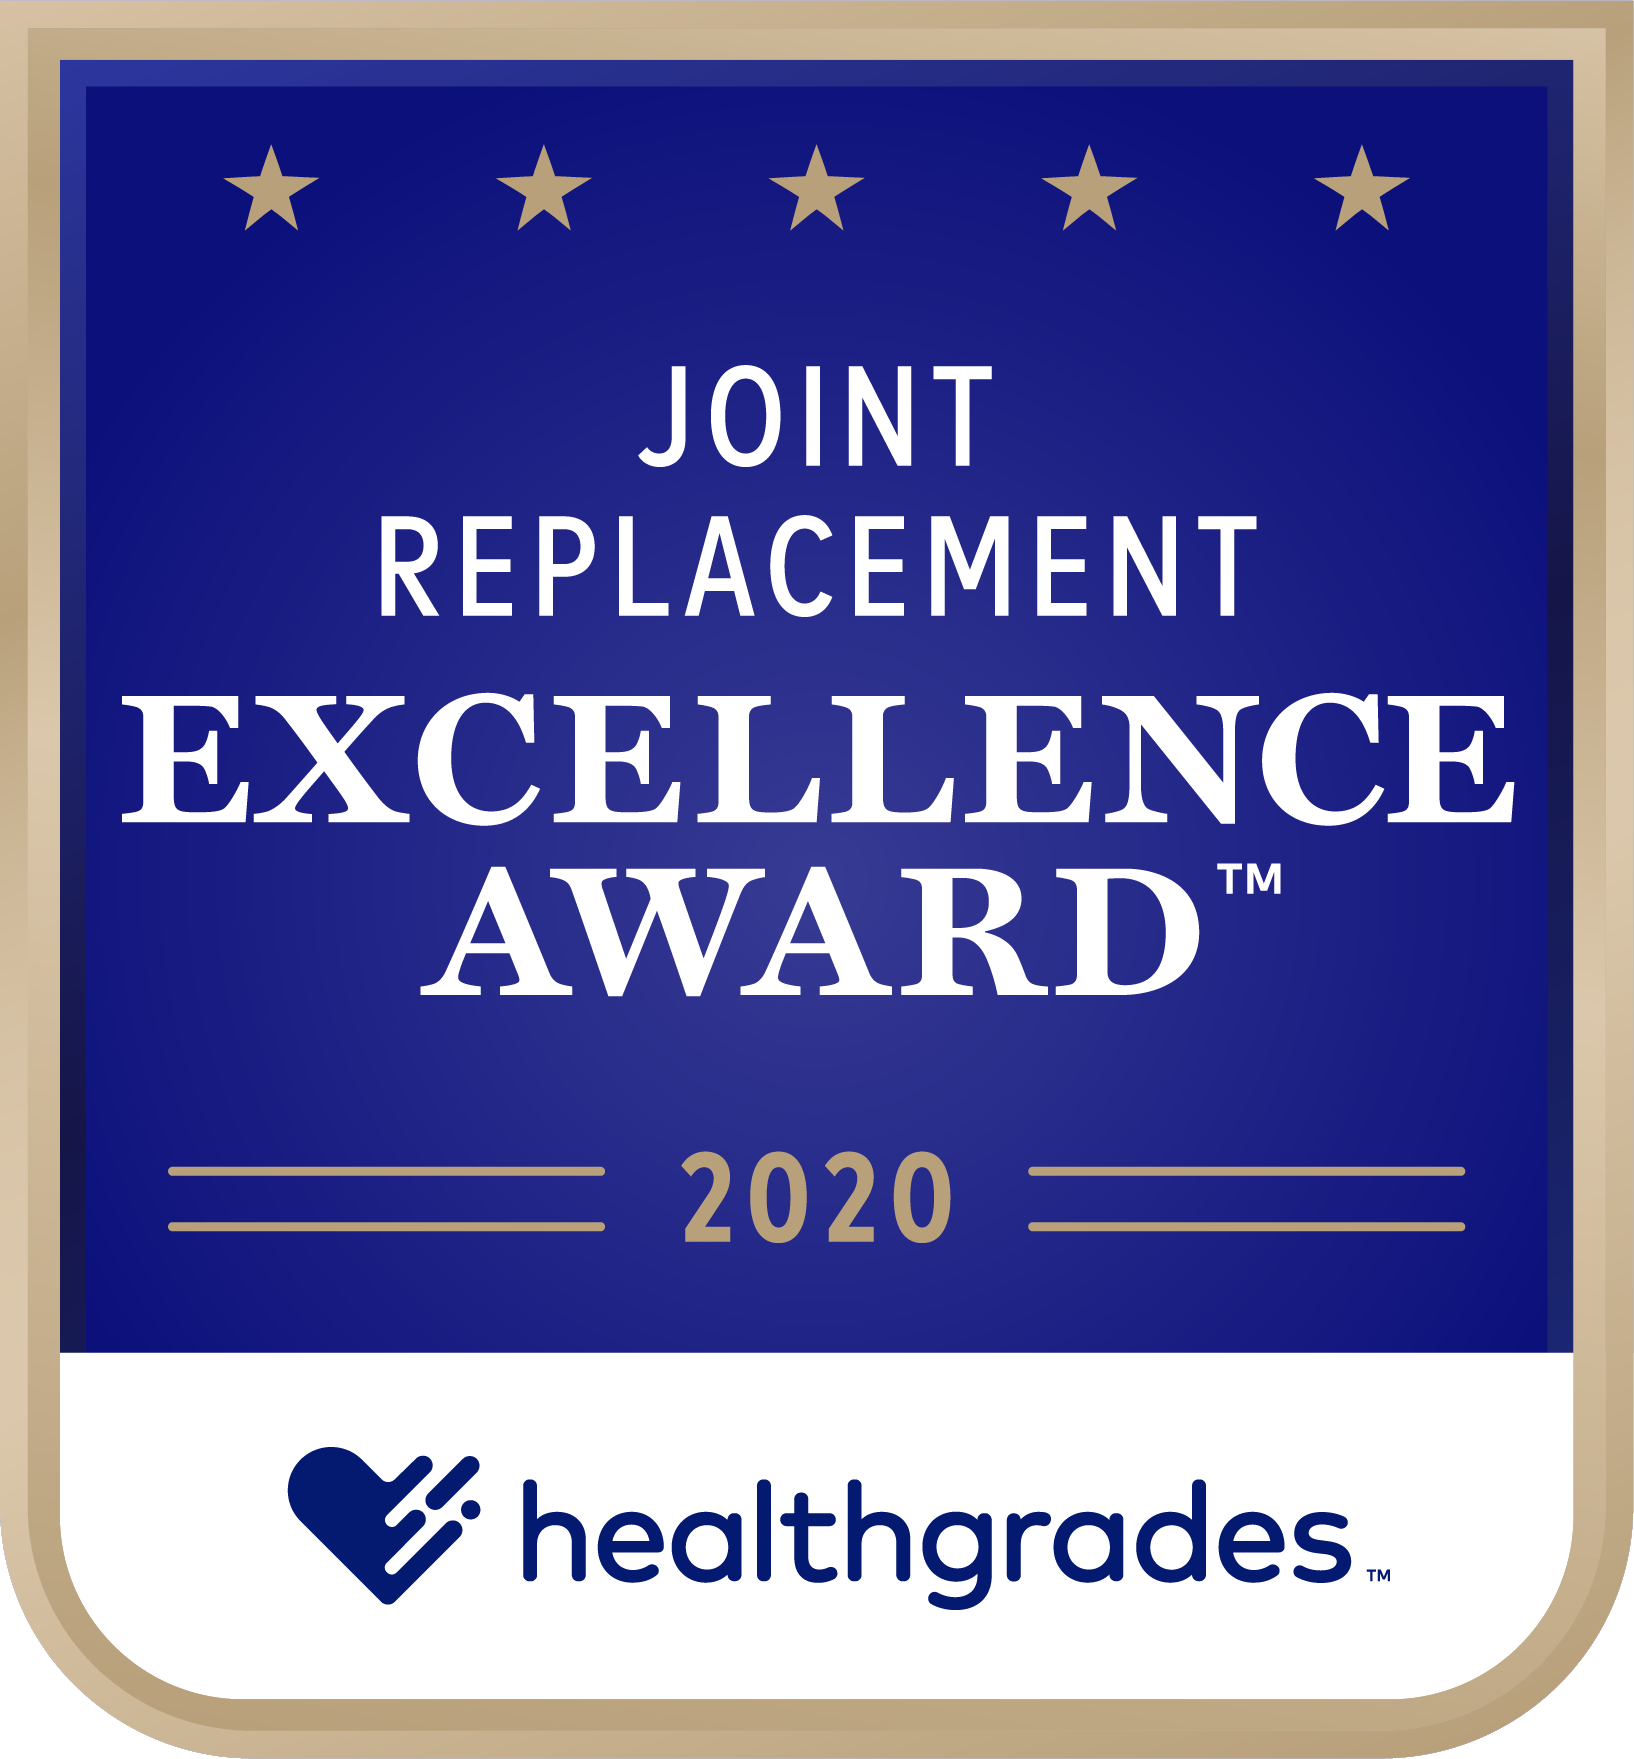 Joint Replacement Award 2020